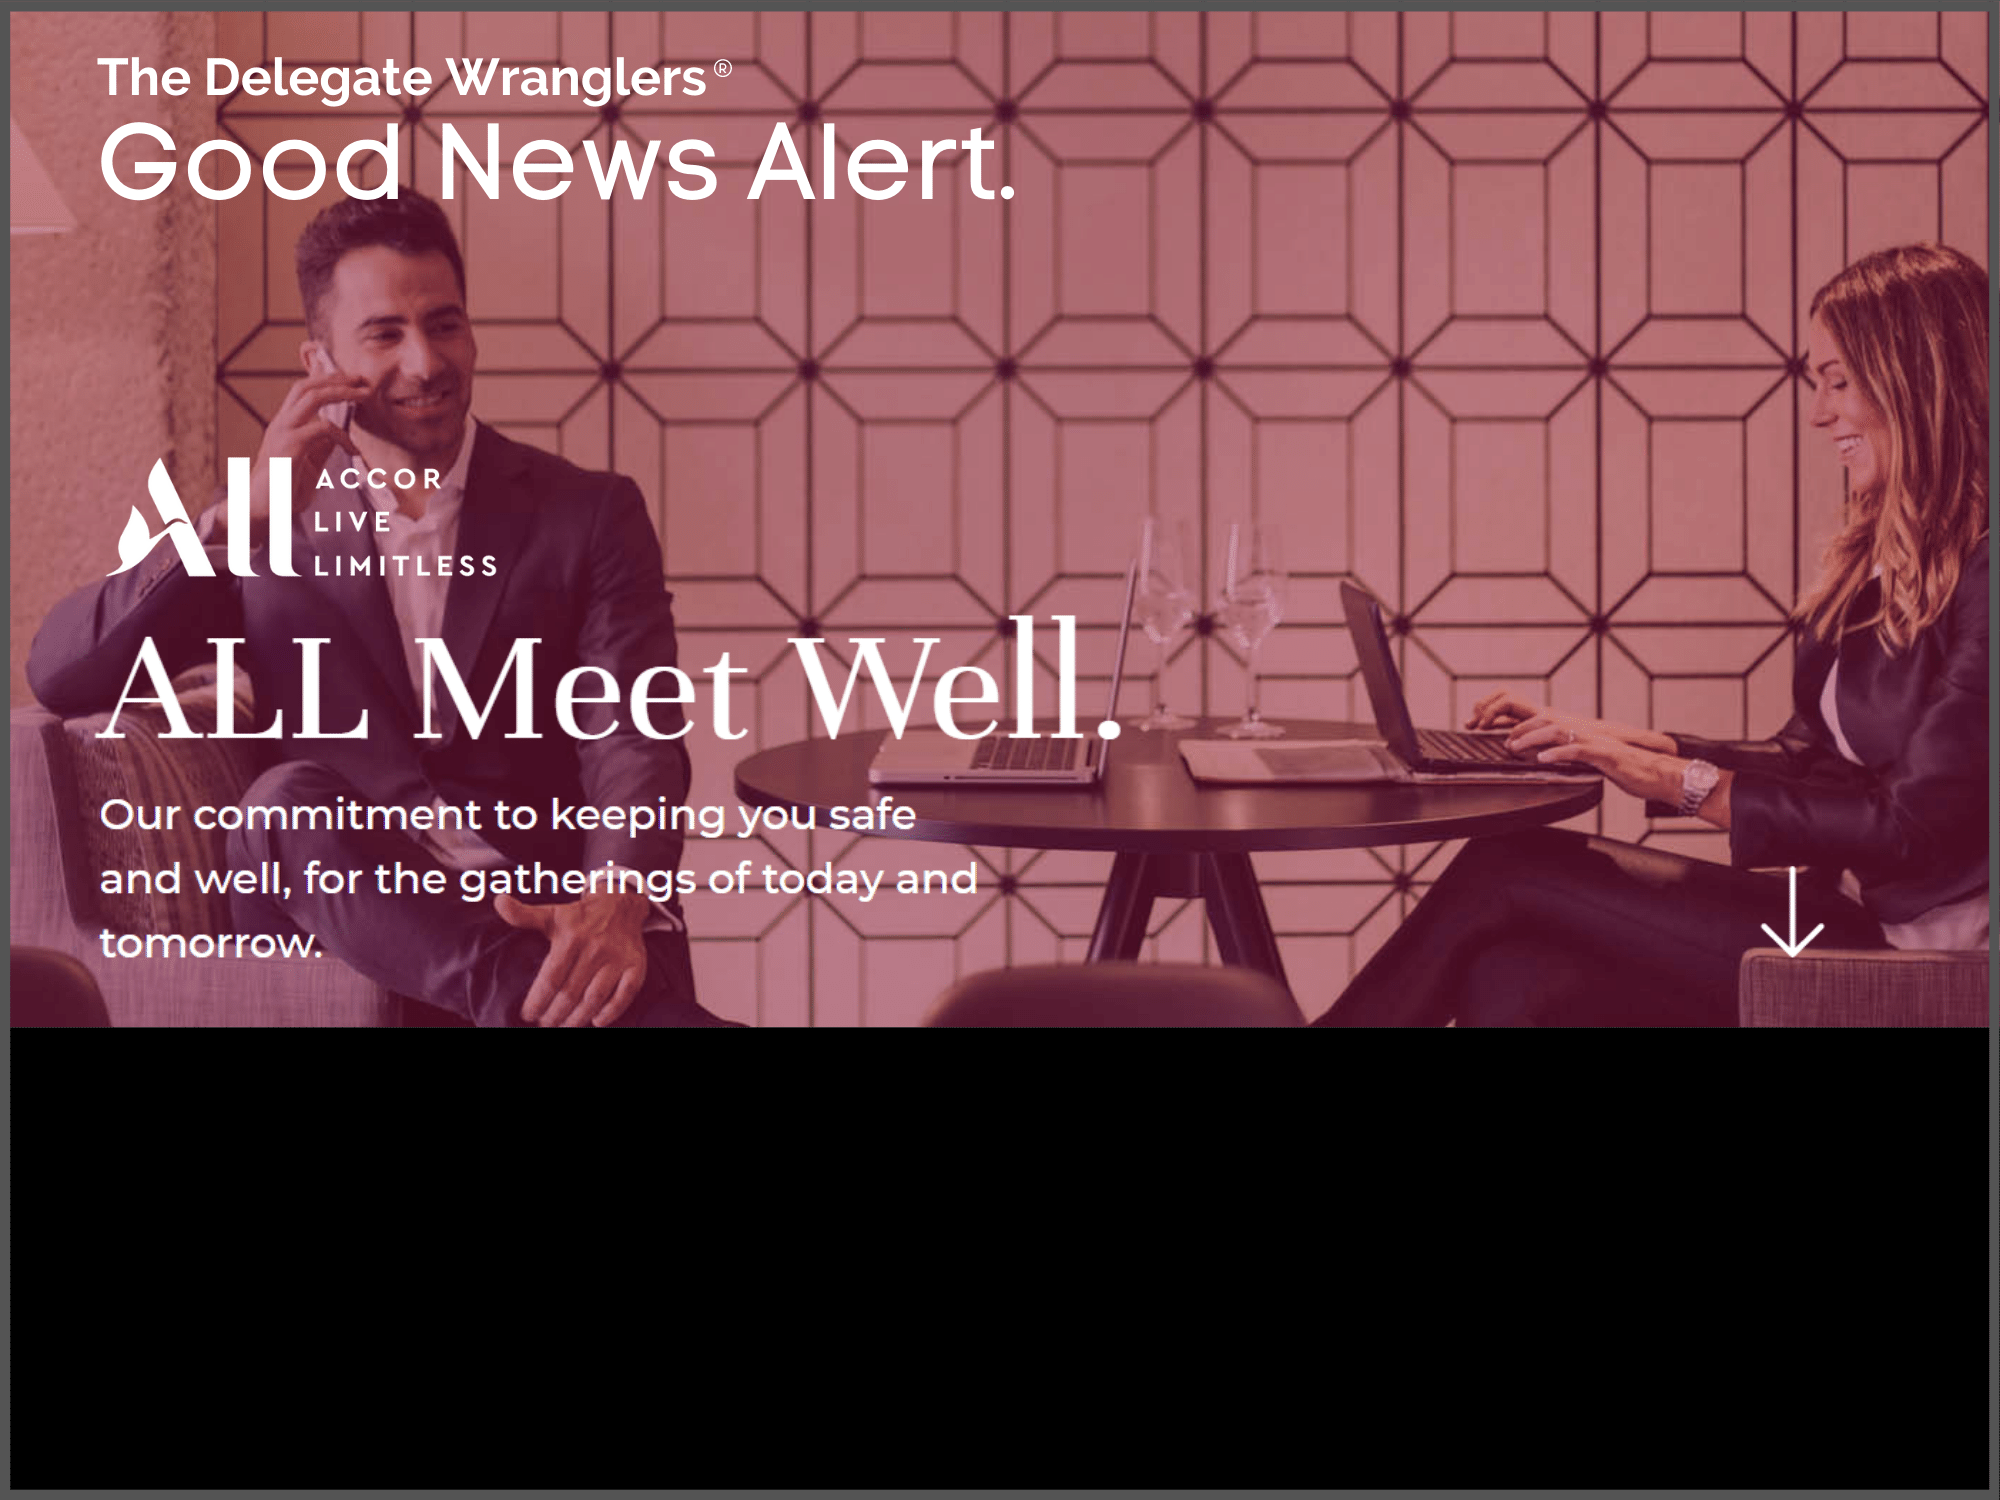 Accor introduces 'ALL Meet Well' for meetings and events in Europe